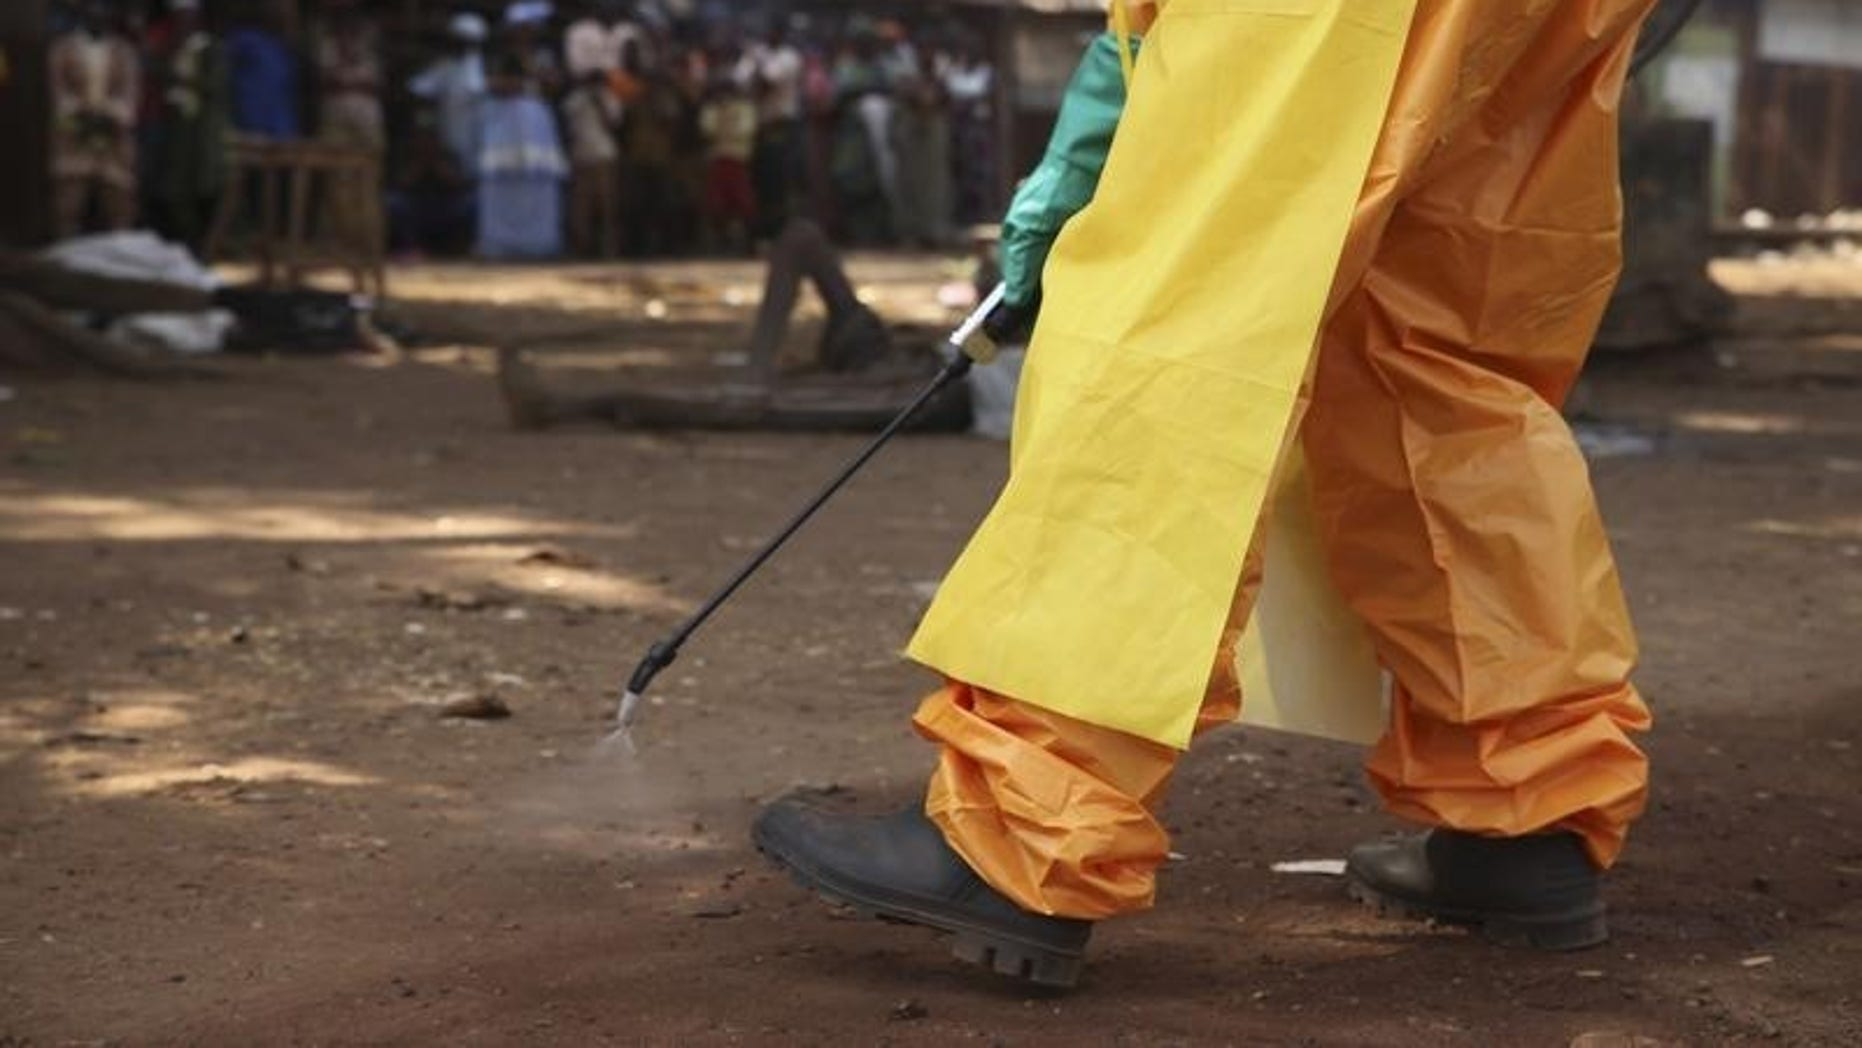 A member of the French Red Cross disinfects the area around a motionless person suspected of carrying the Ebola virus as a crowd gathers in Forecariah January 30, 2015. (REUTERS/MISHA HUSSAIN)